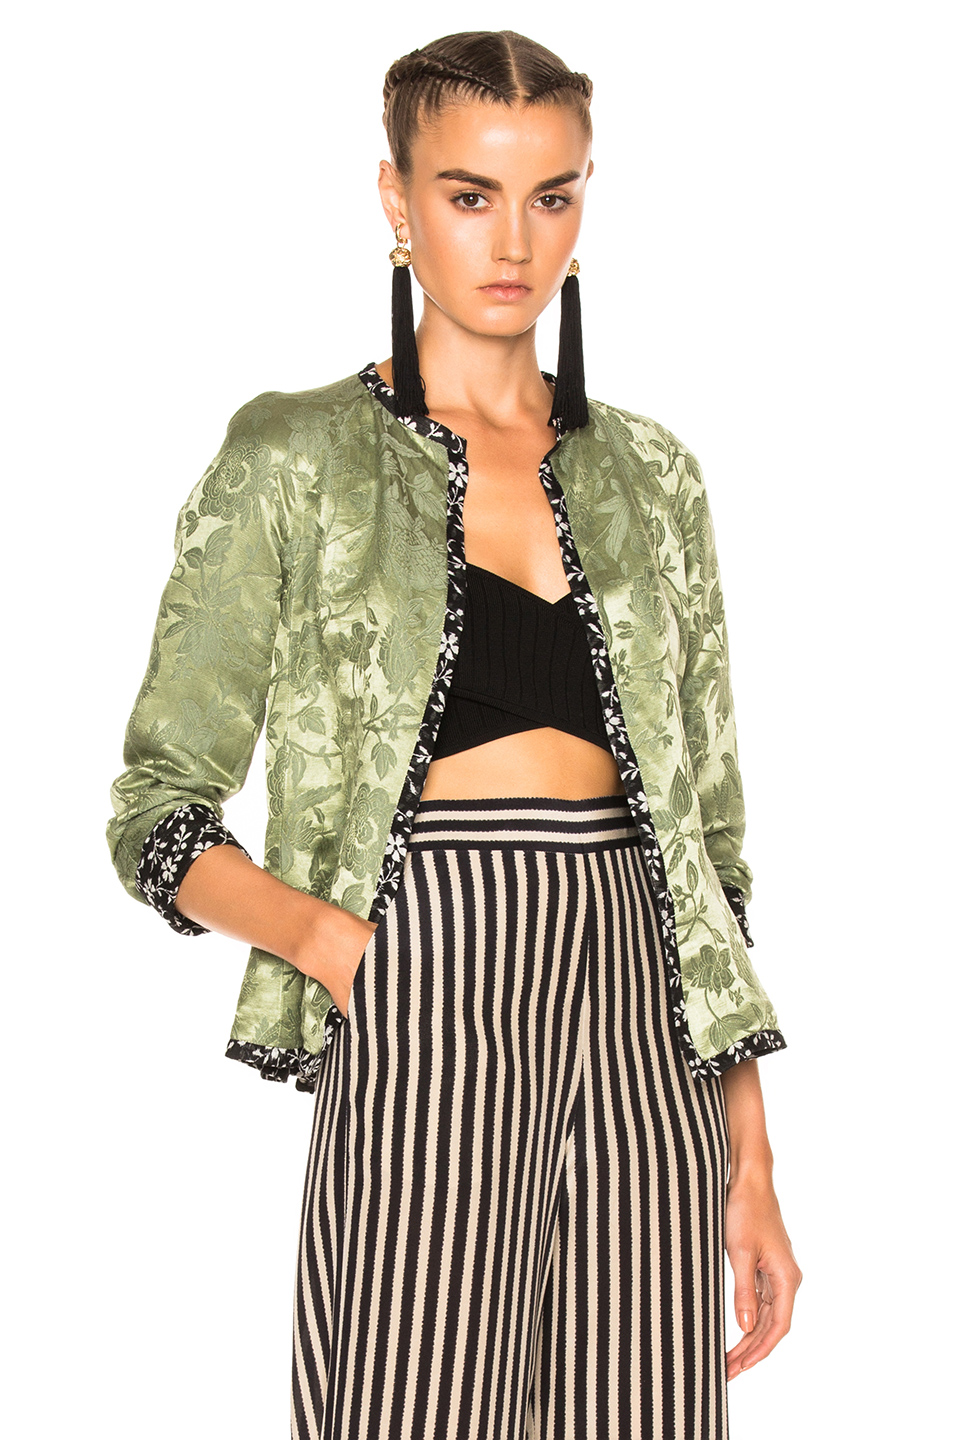 Etro Floral Lined Jacket in Floral,Green